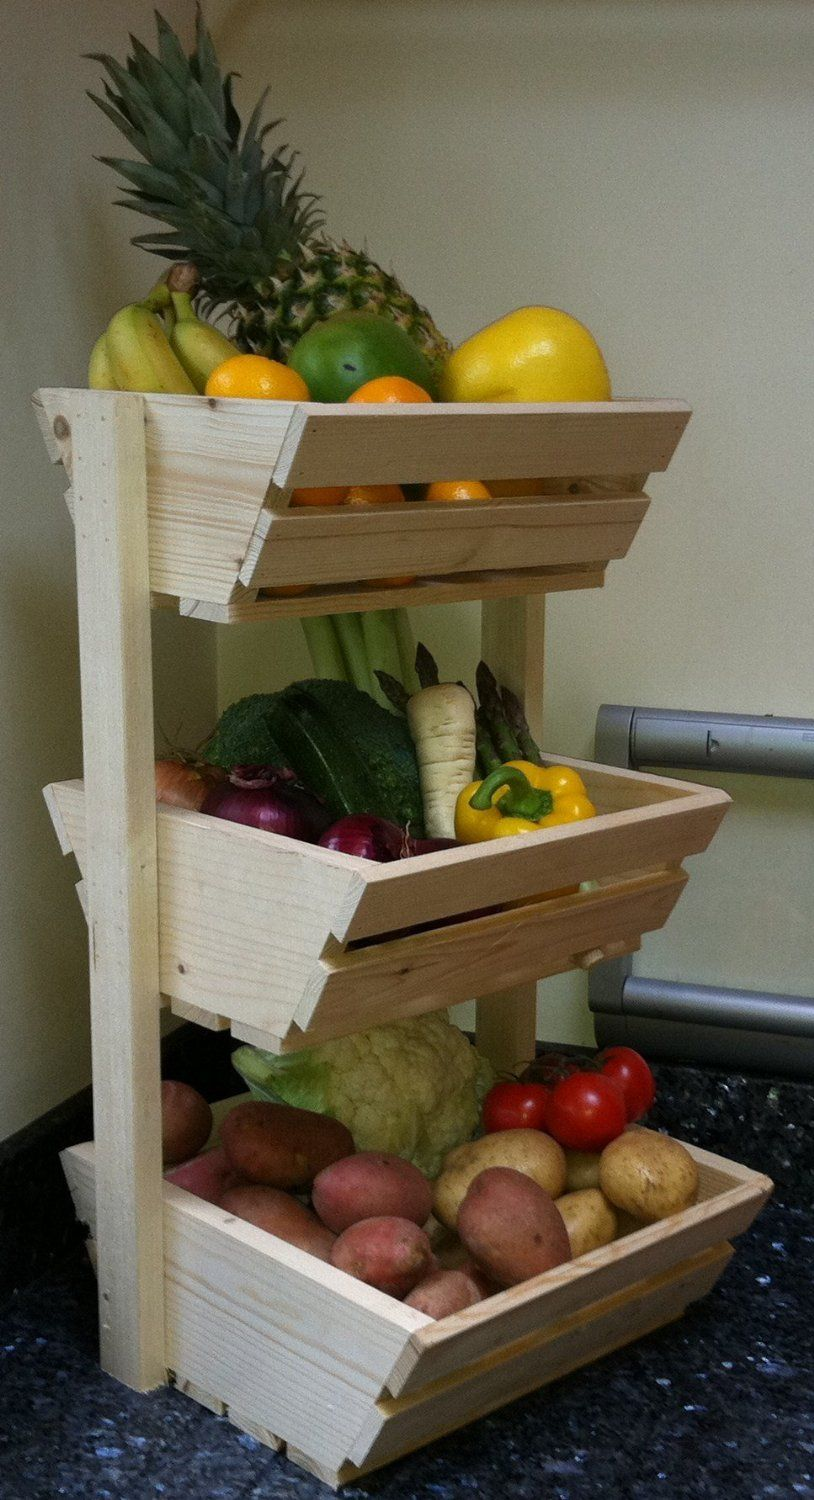 handmade wood decor fruit and veggie holder woodworking home three tier vegetable rack: Amazon.co.uk: Kitchen u0026 Home